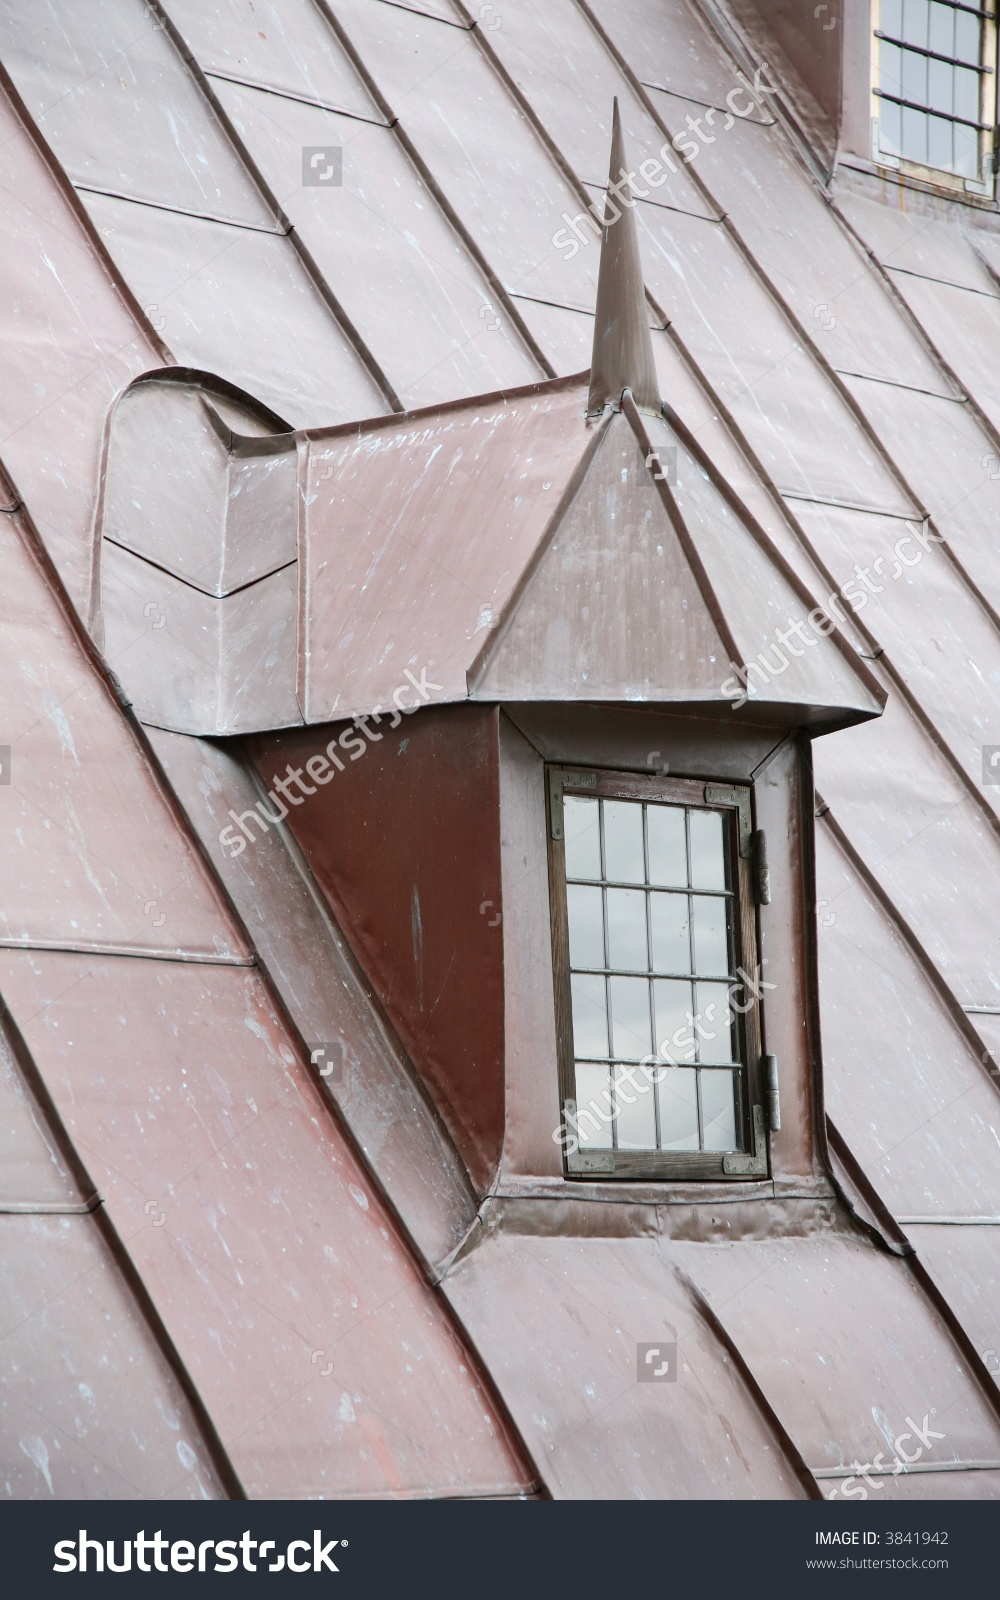 Copper Roof Leaded Dormer Window On Stock Photo 3841942.